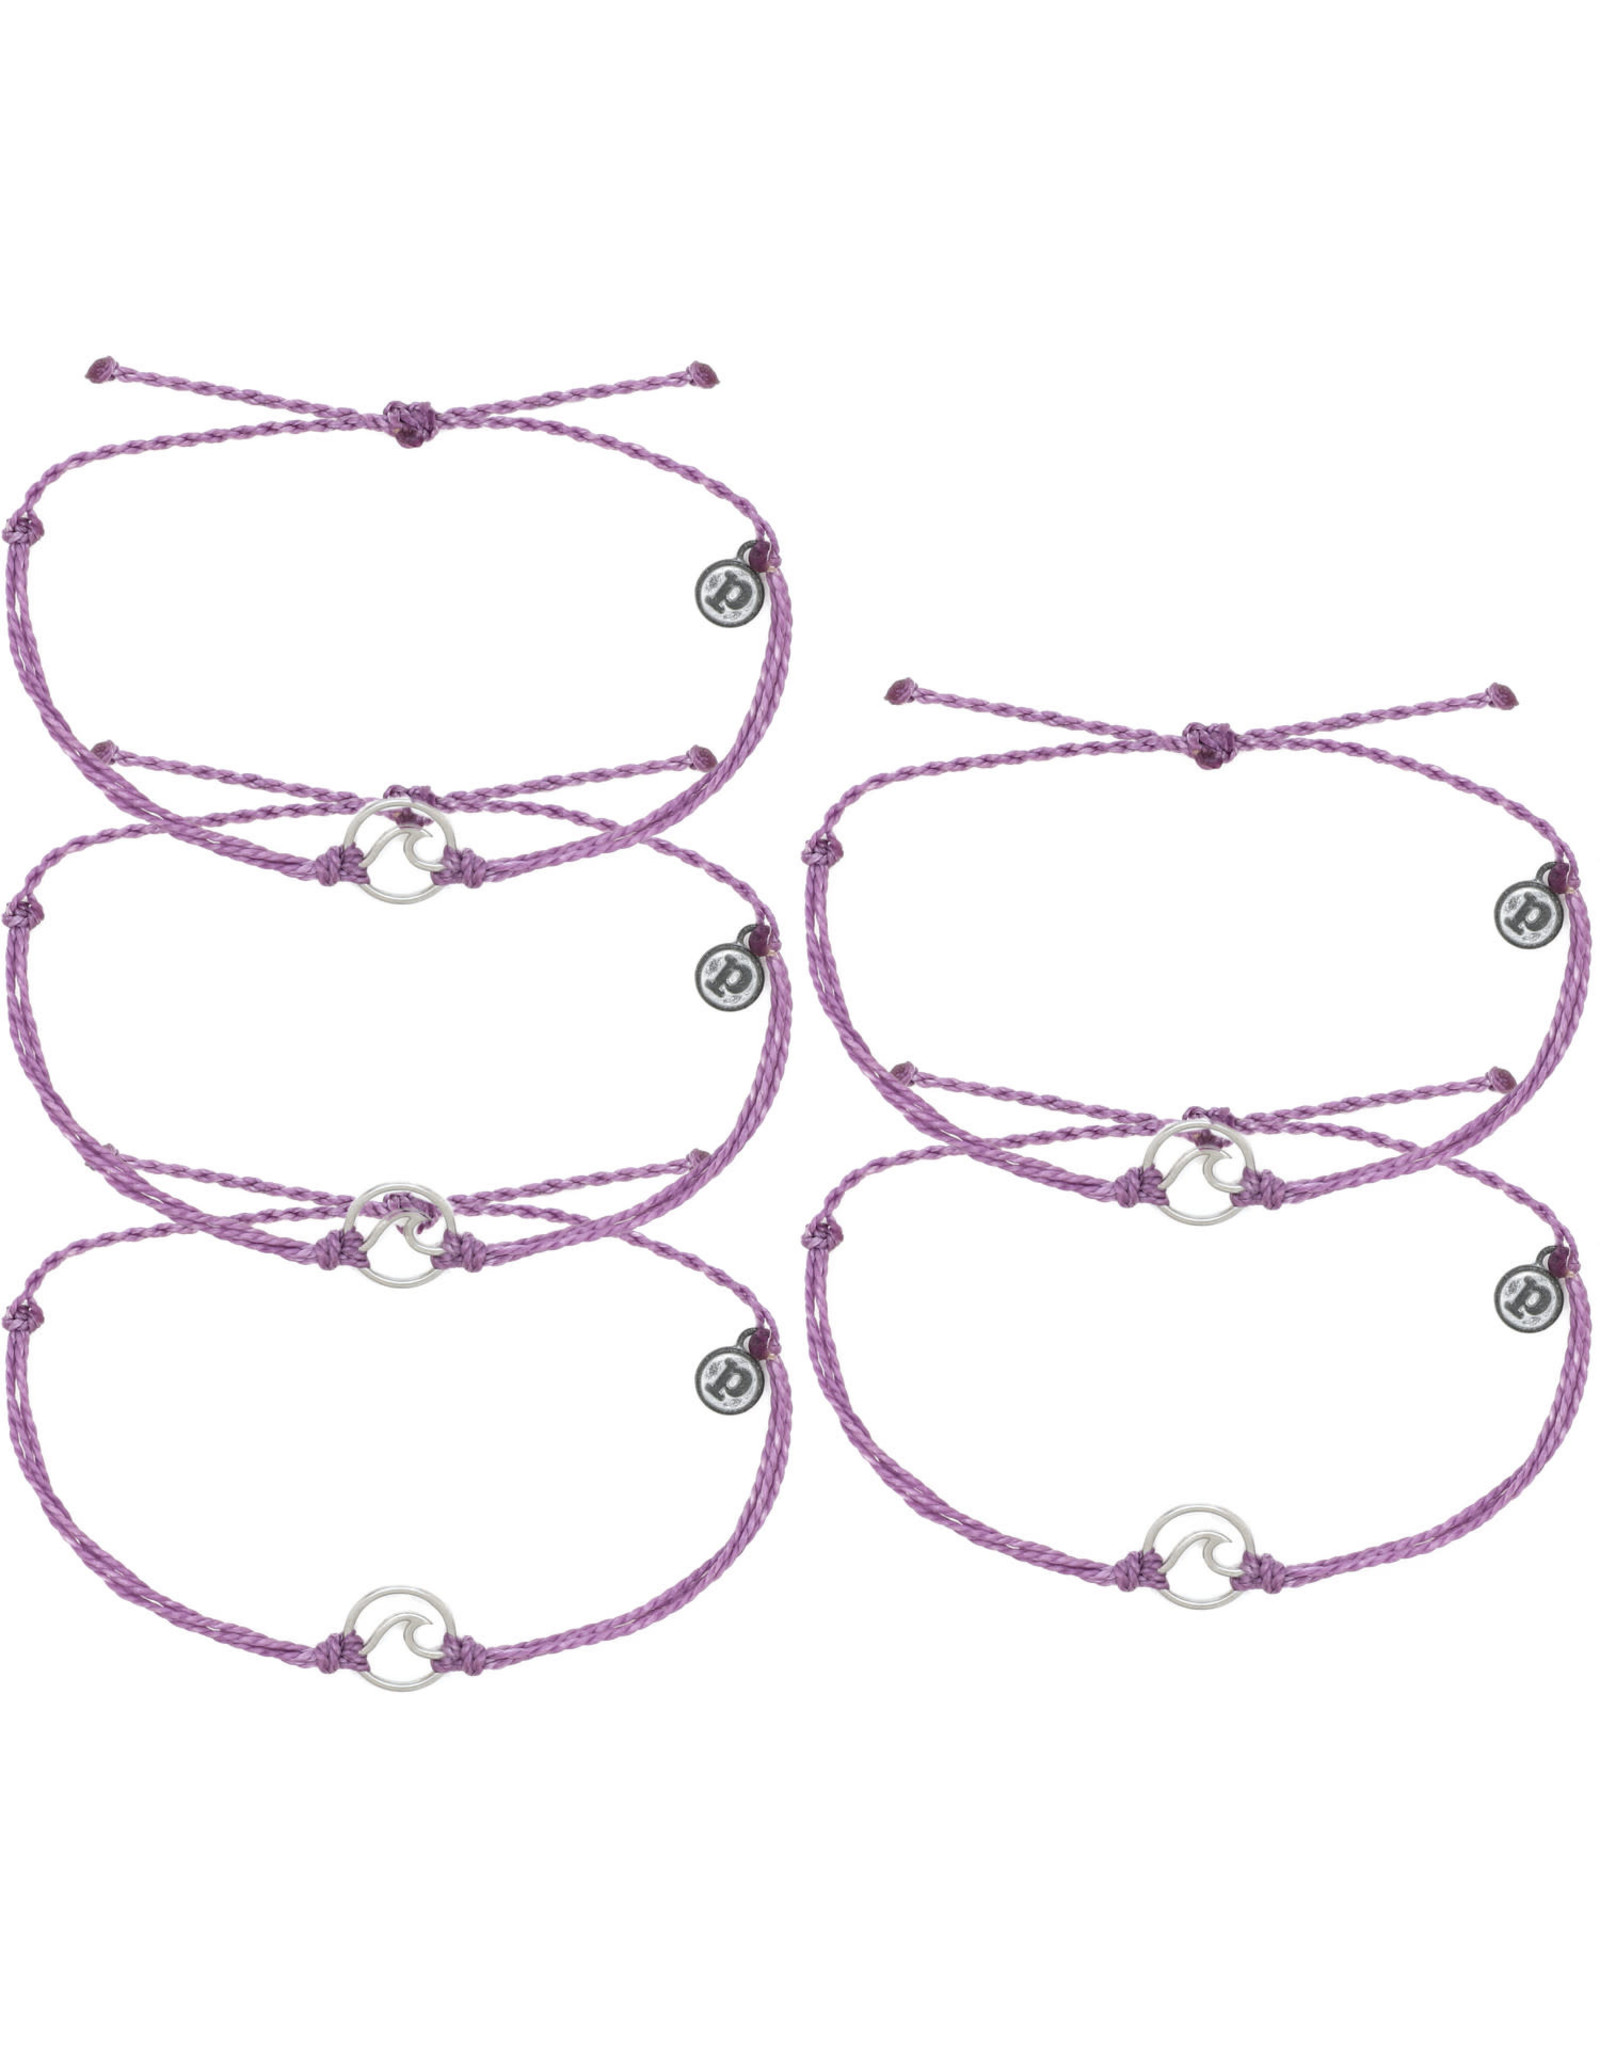 PURA VIDA BRACELETS SILVER WAVE LIGHT PURPLE